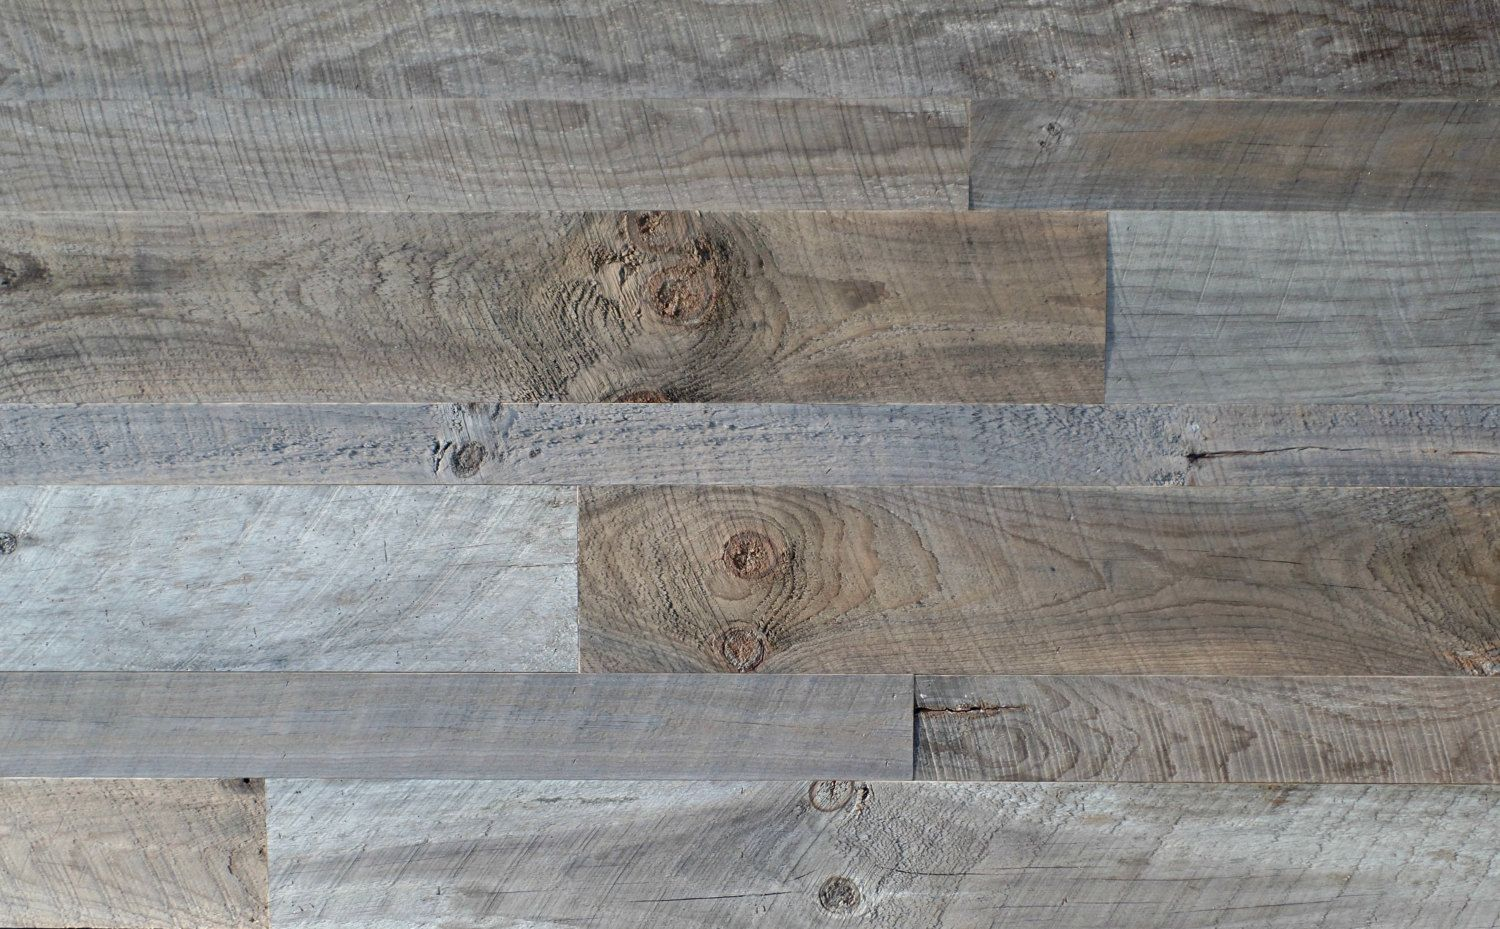 Reclaimed Wood Paneling Reclaimed Wood Wood Planks 100 Authentic By Swdesigns74 On Etsy Wood Panel Walls Pine Walls Wood Plank Walls